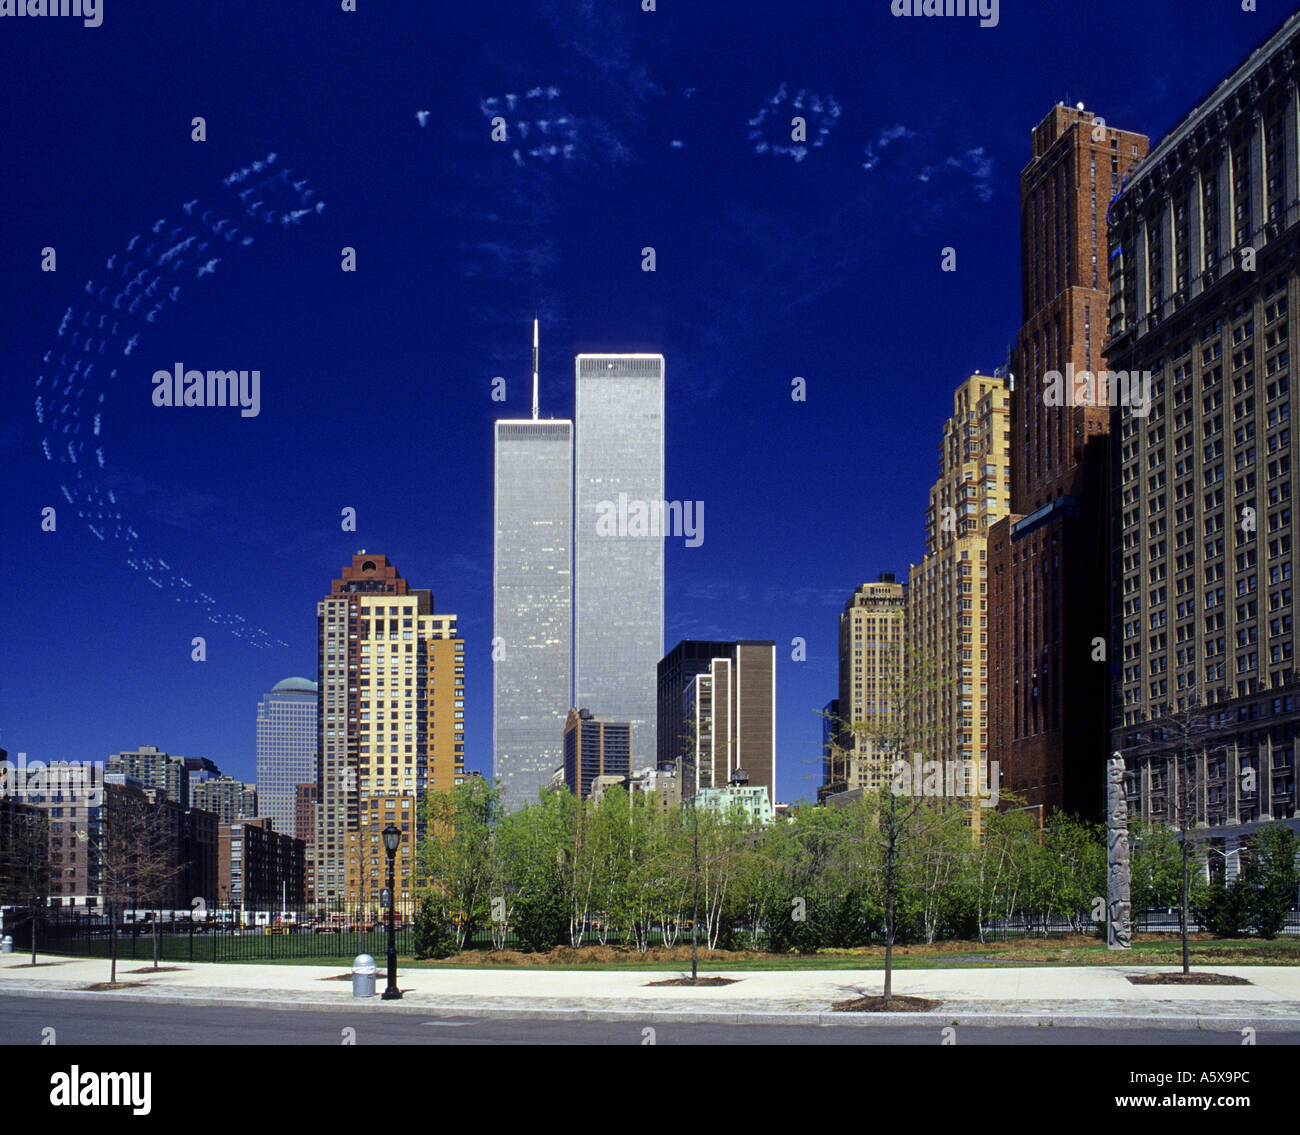 Look closely at skywriting forming a ring around the former World Trade Center twin towers in New York - Stock Image